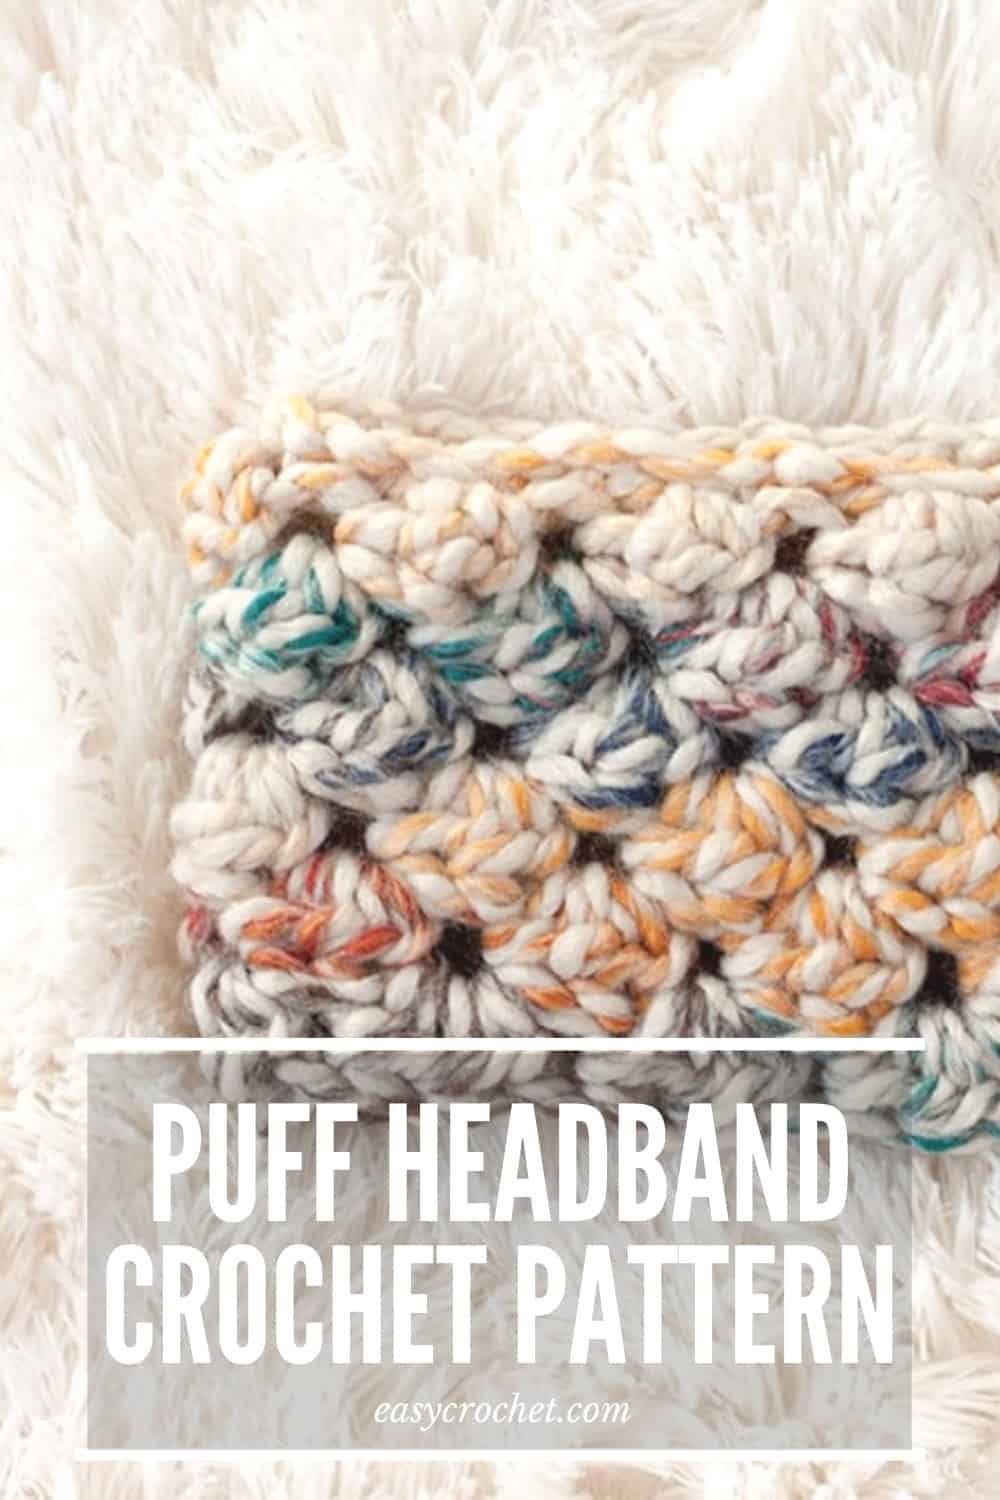 Puffed Headband Crochet Pattern that is simple and fun to make! Perfect to keep you cozy warm during the cool weather months! via @easycrochetcom